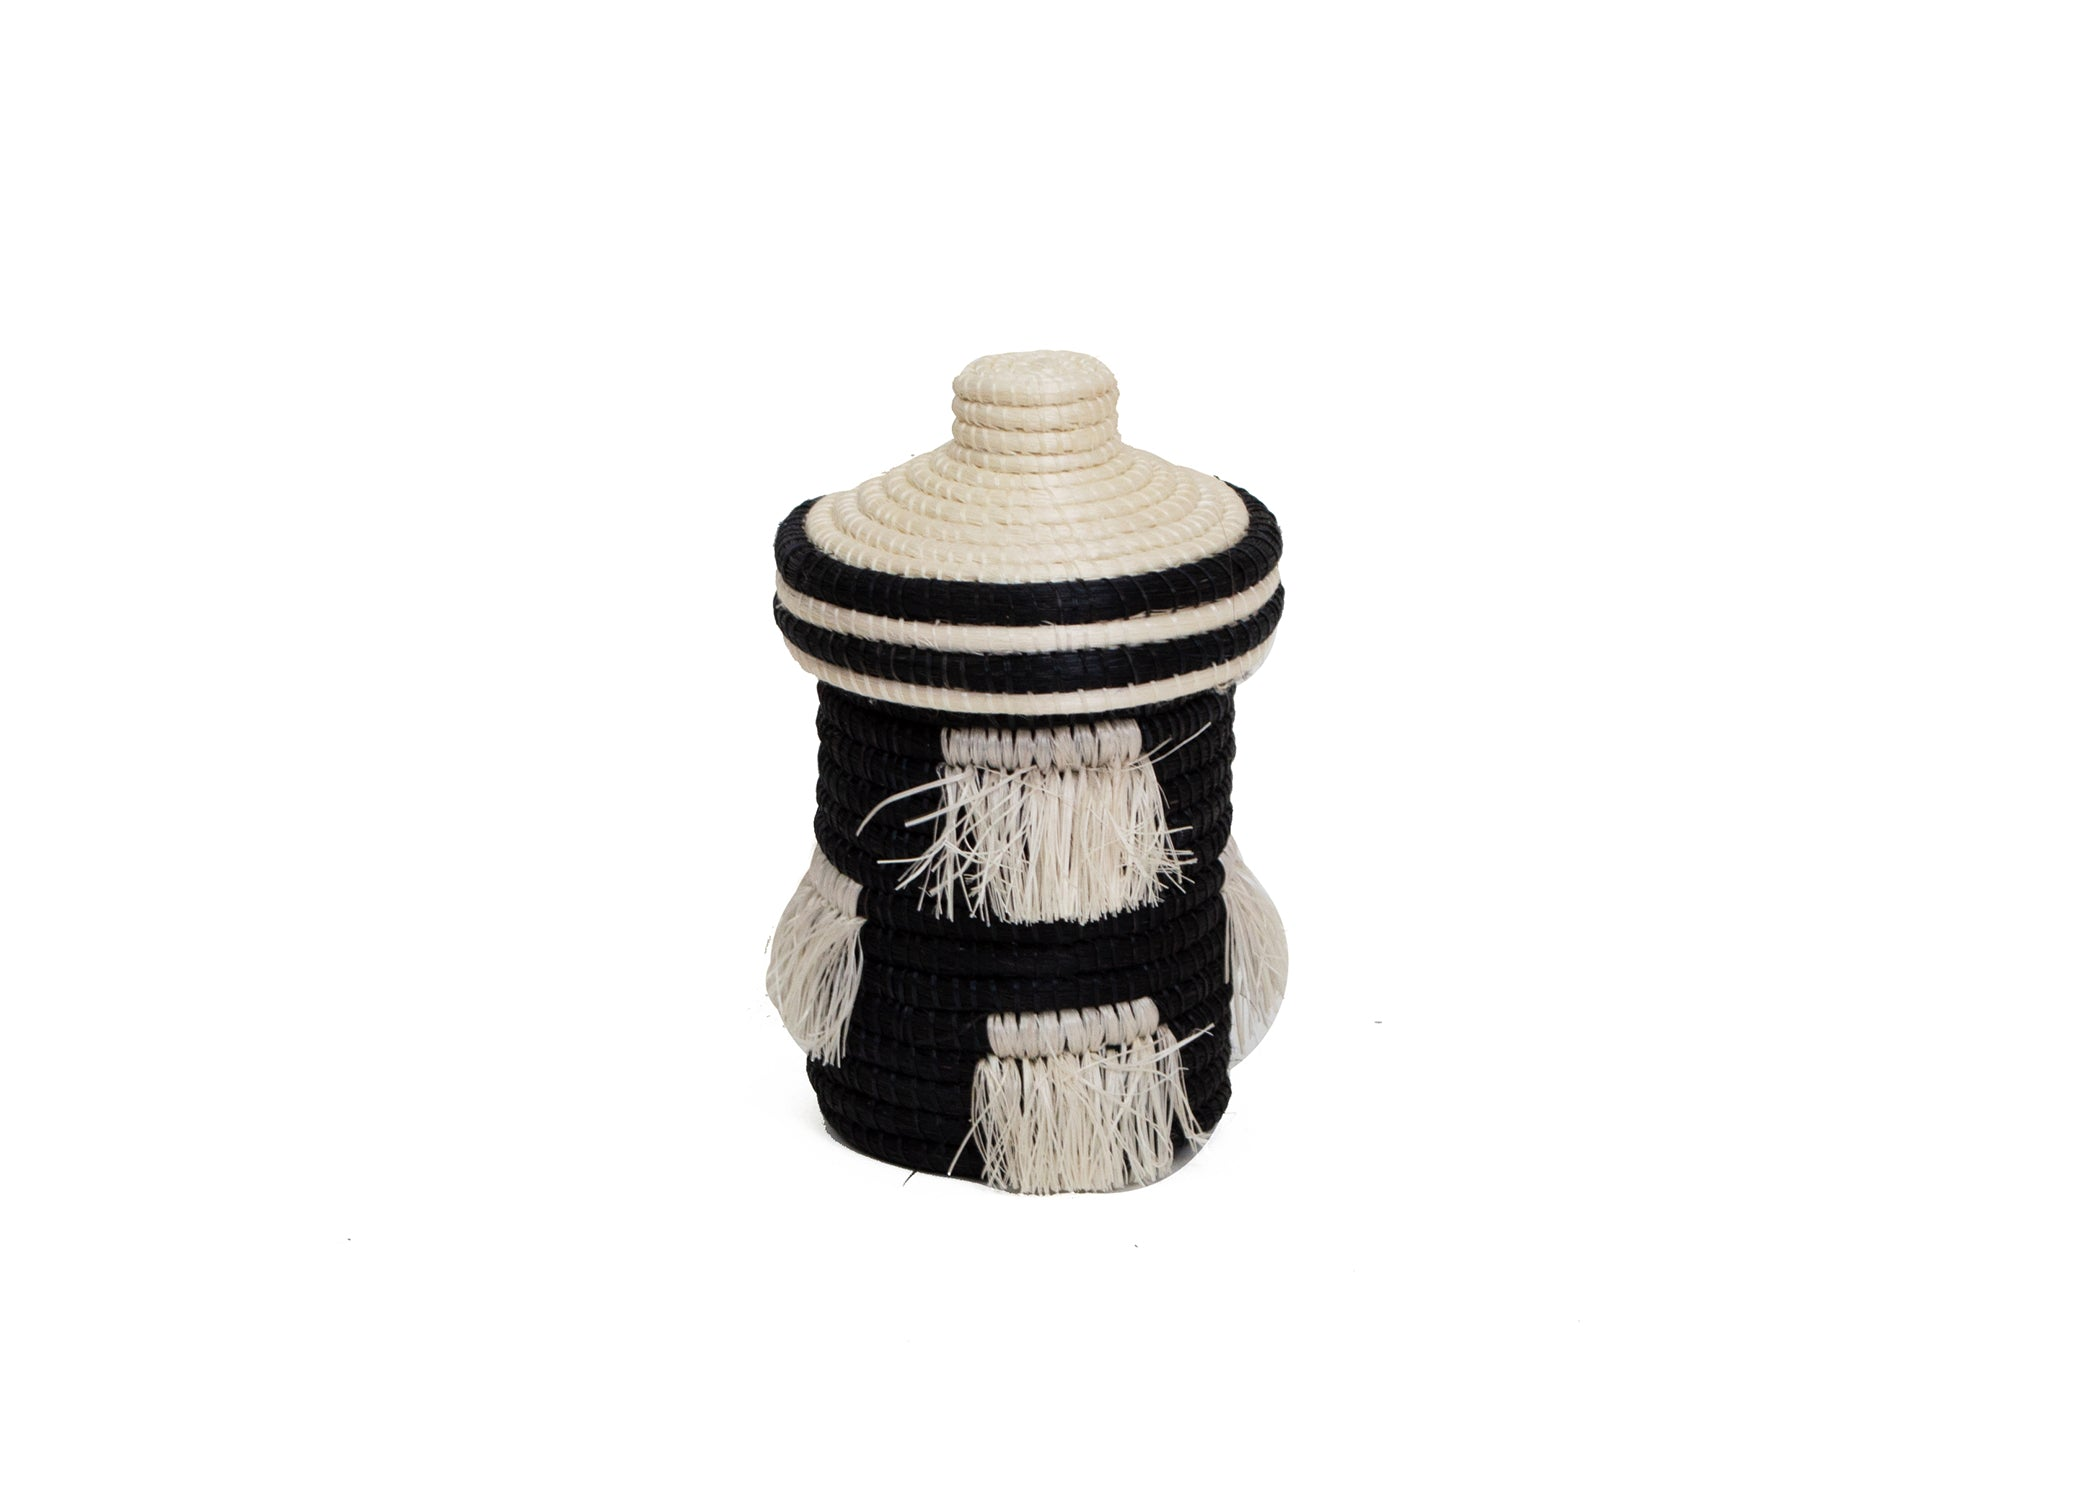 Black + White Fringed Trinket Box - KAZI - Artisan made high quality home decor and wall art